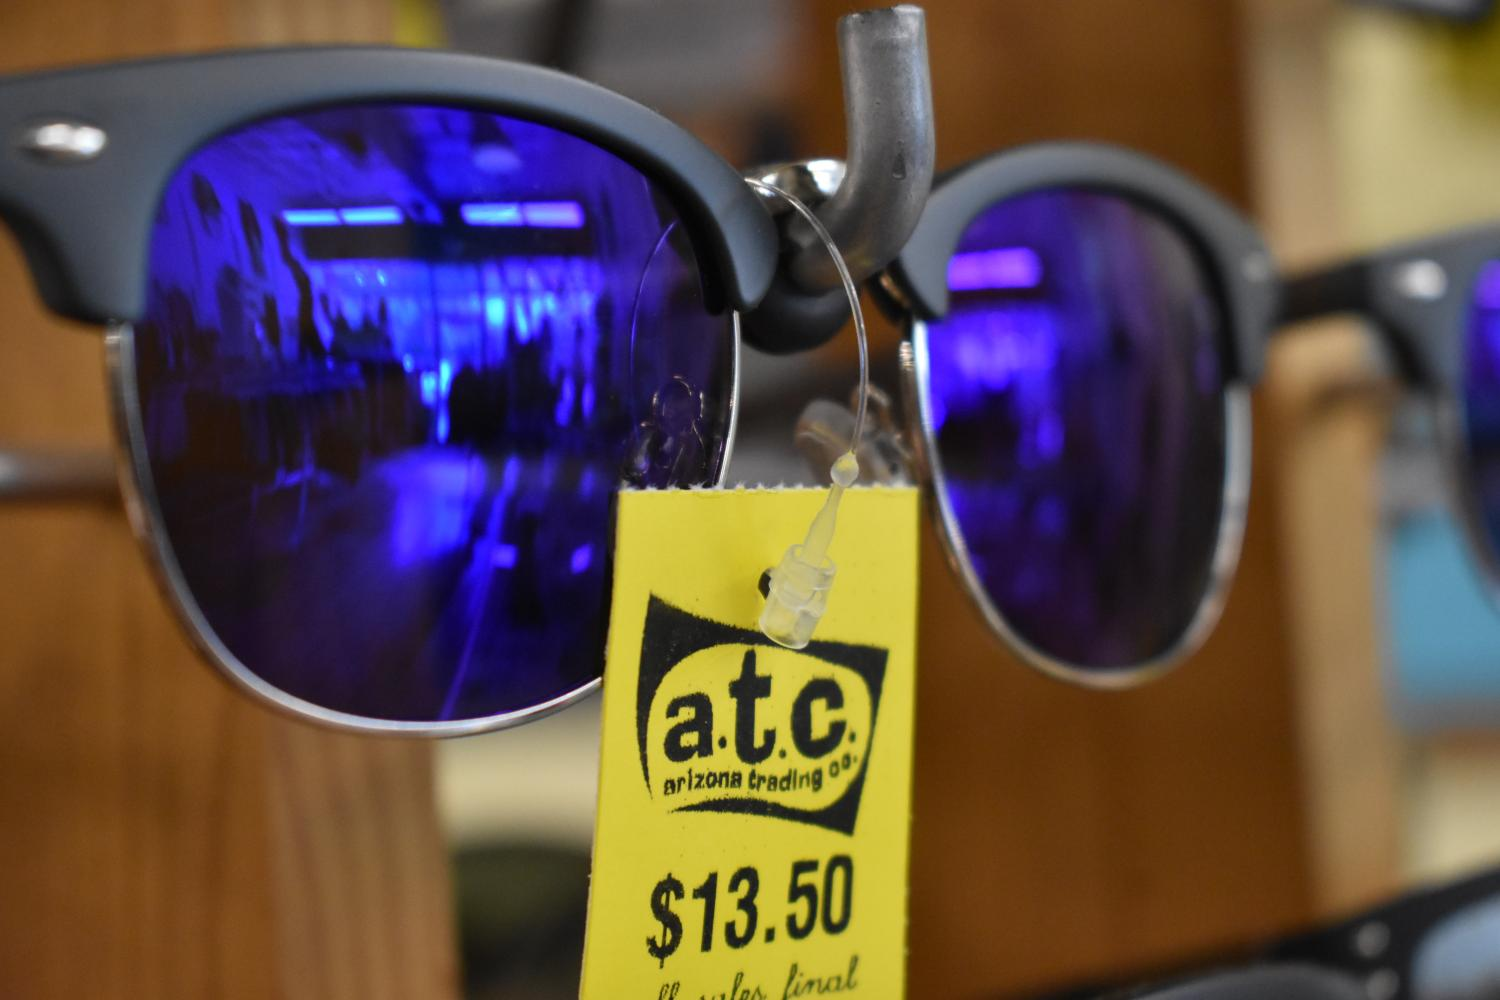 Glasses displayed at Arizona Trading Co., a secondhand clothing store in downtown Lawrence.